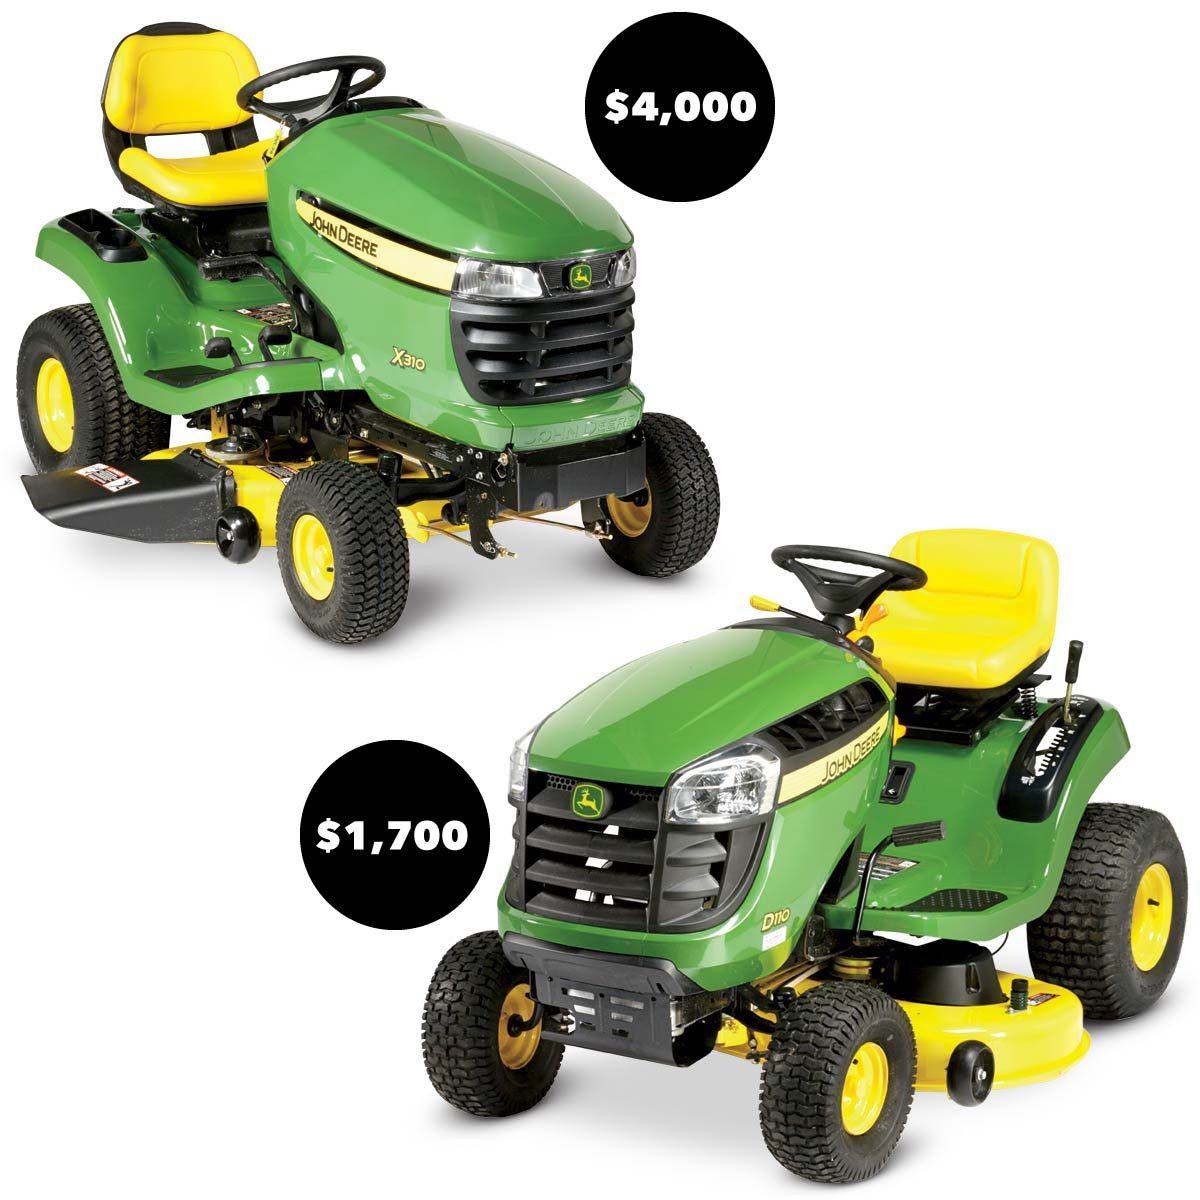 riding lawn mowers basic vs. loaded comparison